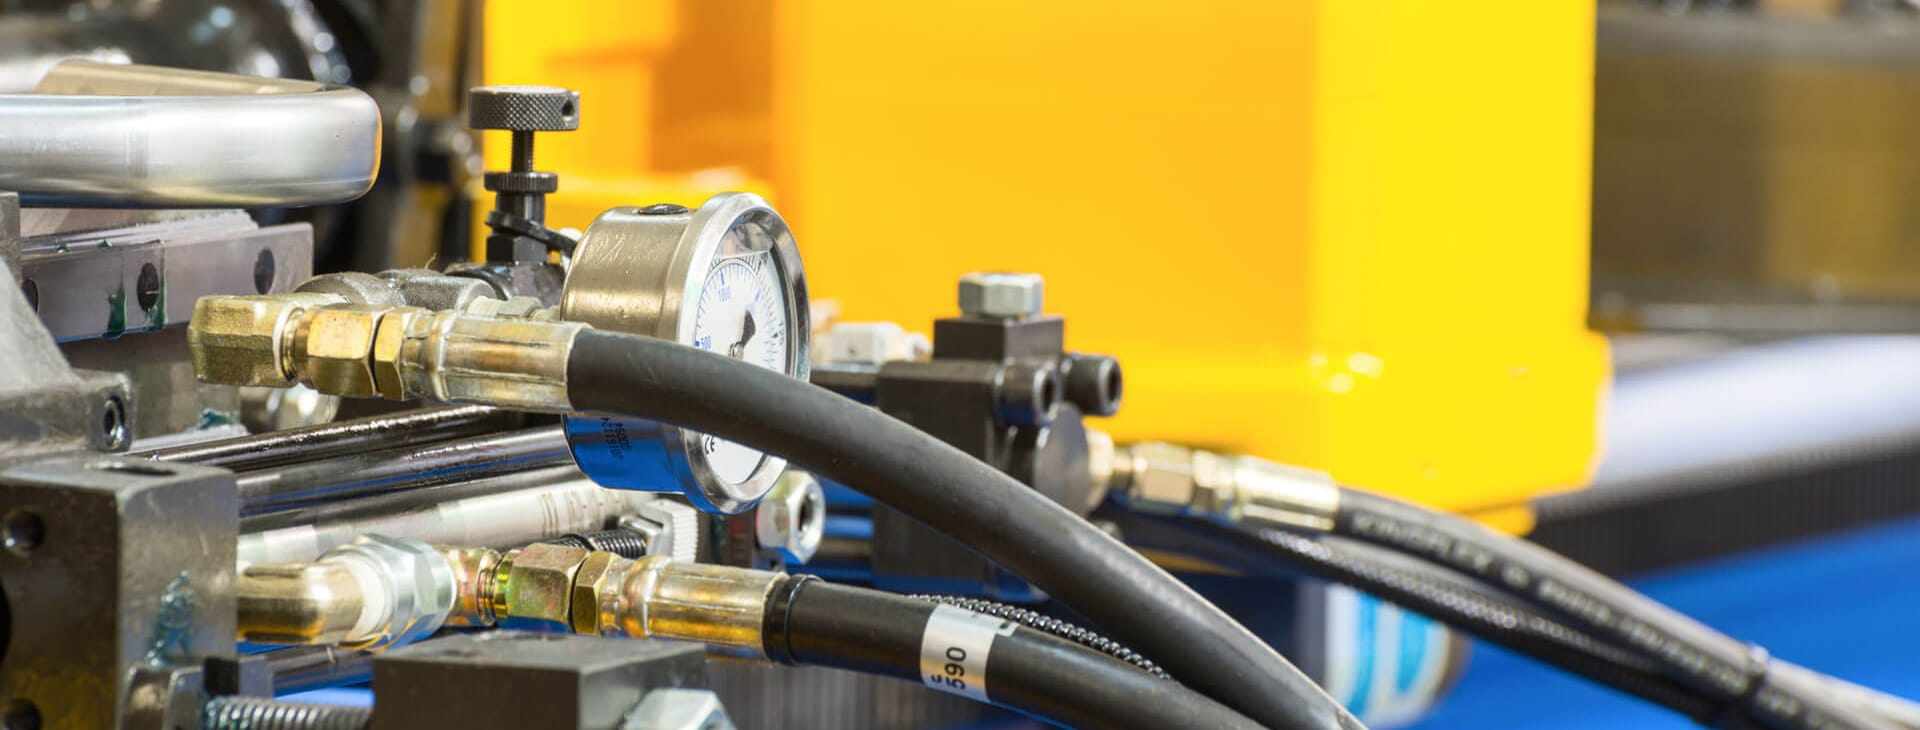 industrial tubing shown attached to a yellow and blue machine